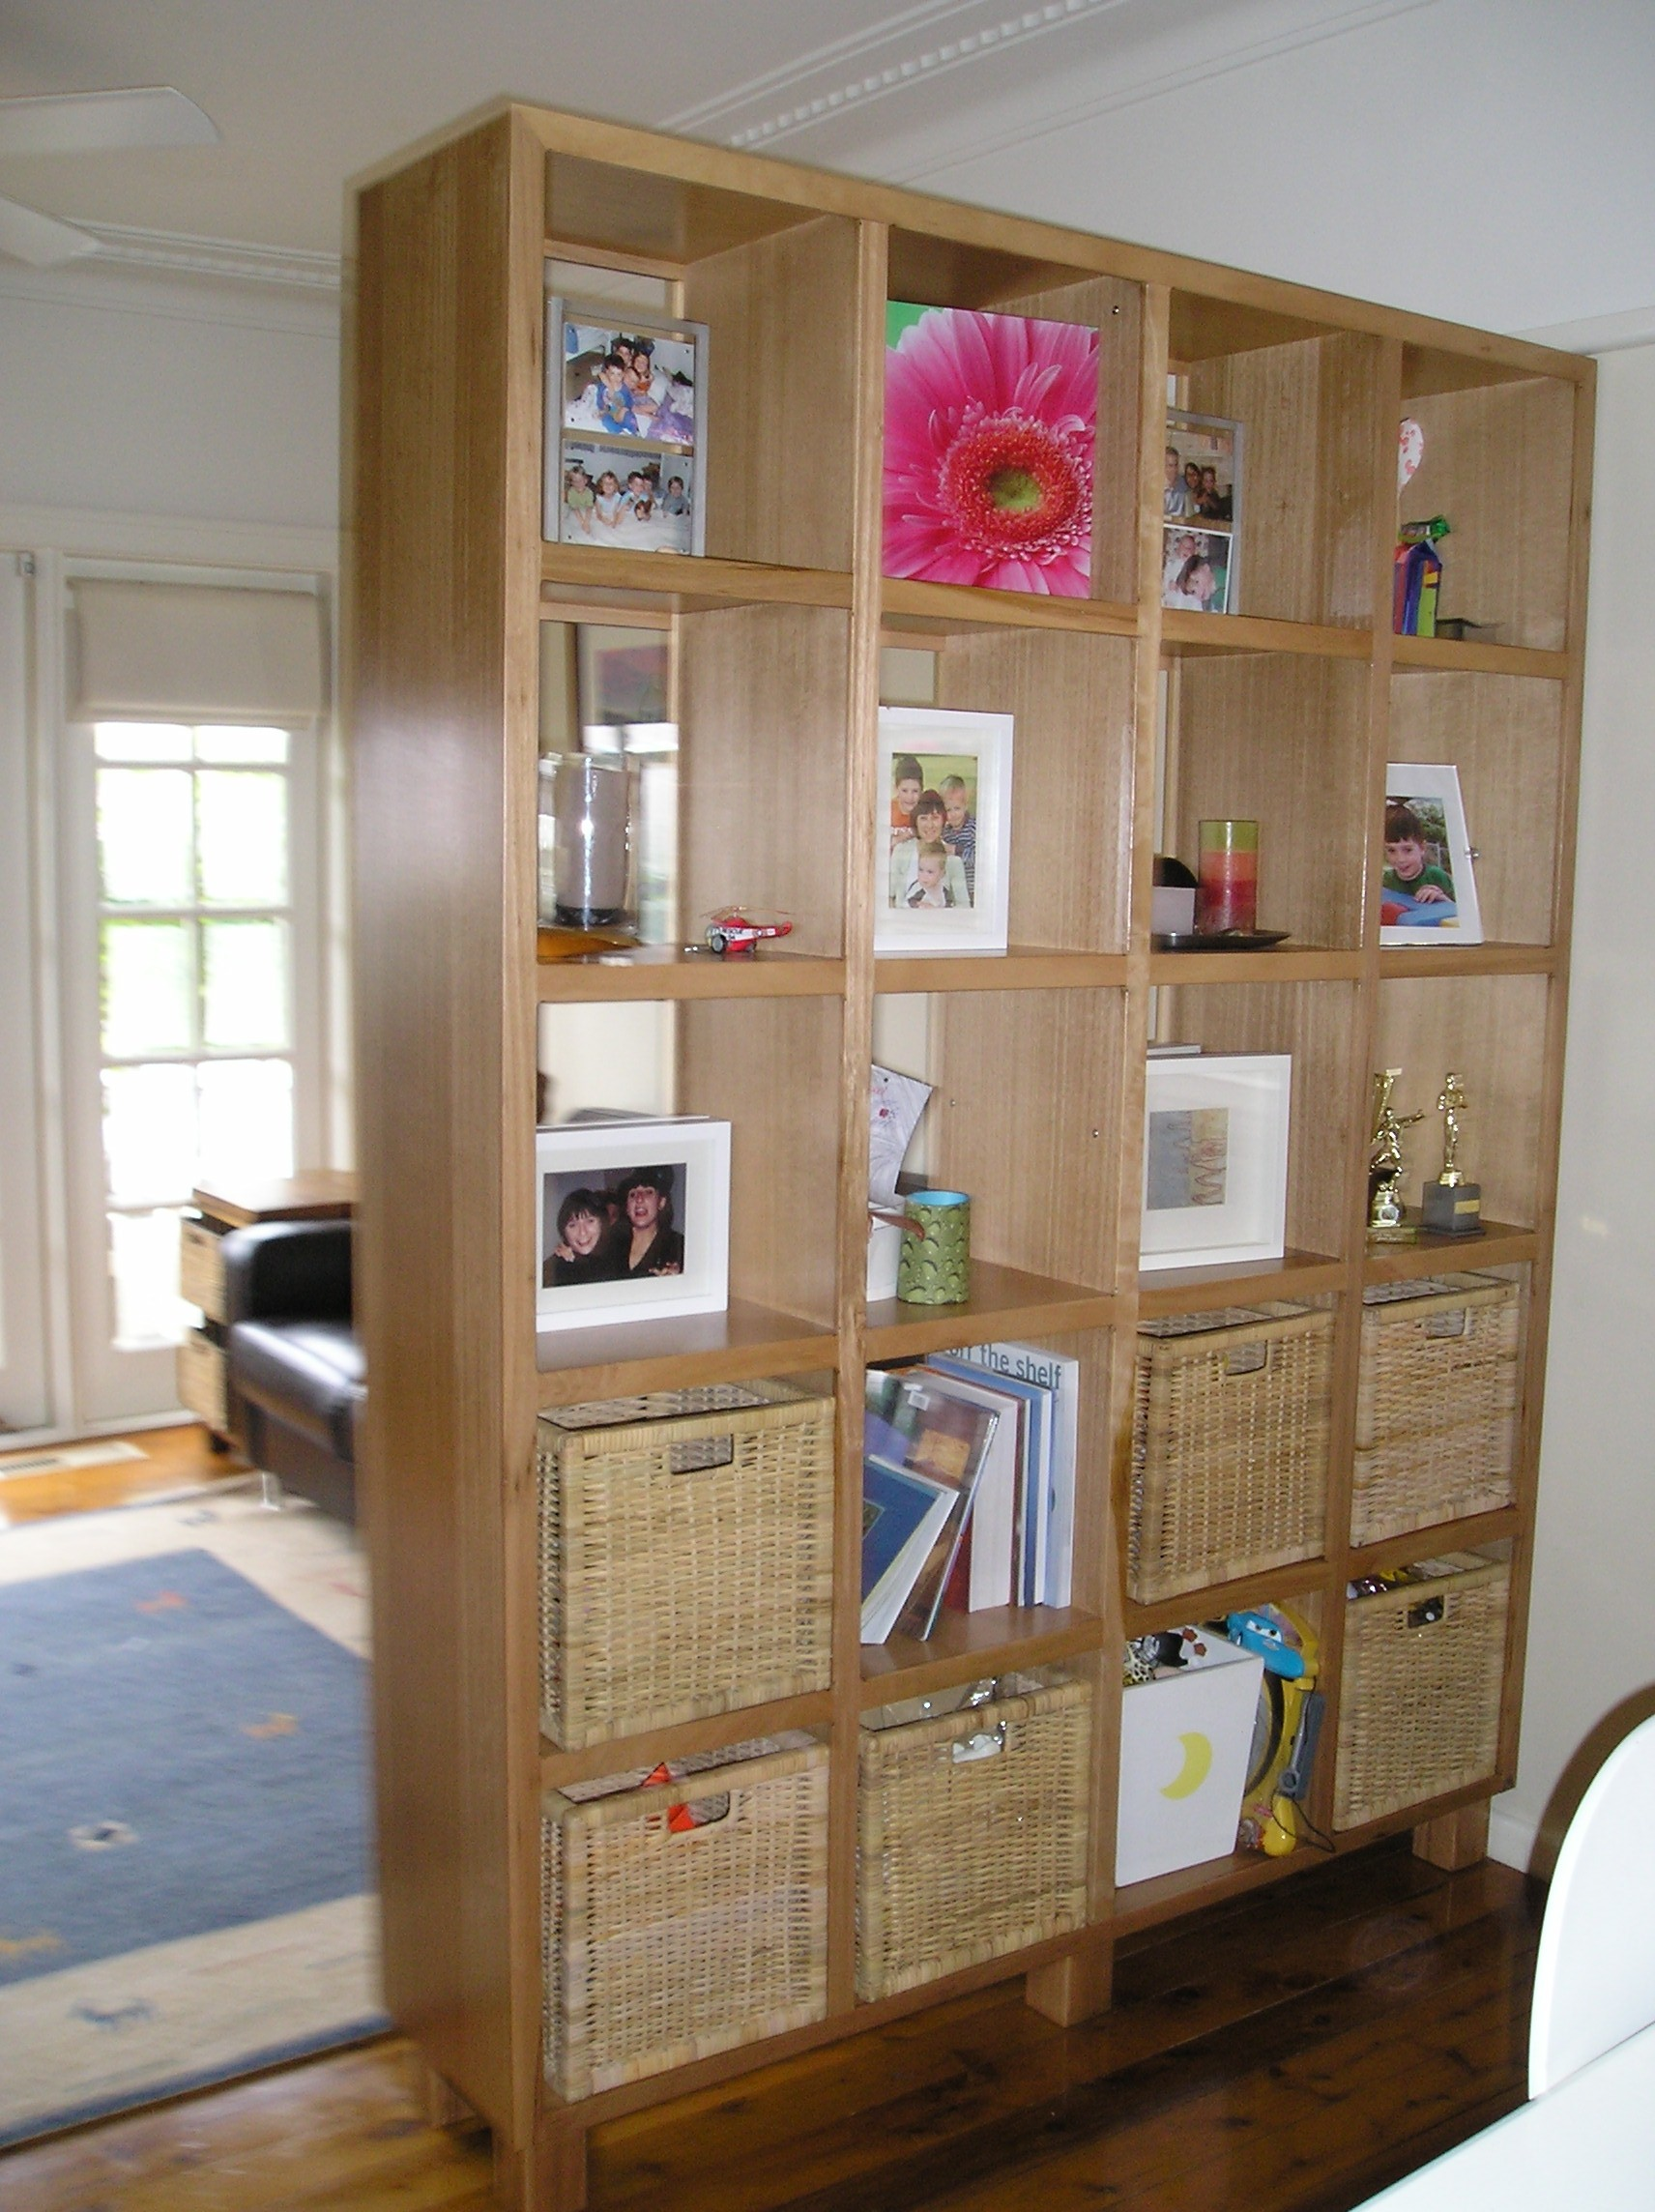 Fascinating Storage Room Dividers Of Custom Tall Wooden Bookcase Design For Divider Acnn Decor